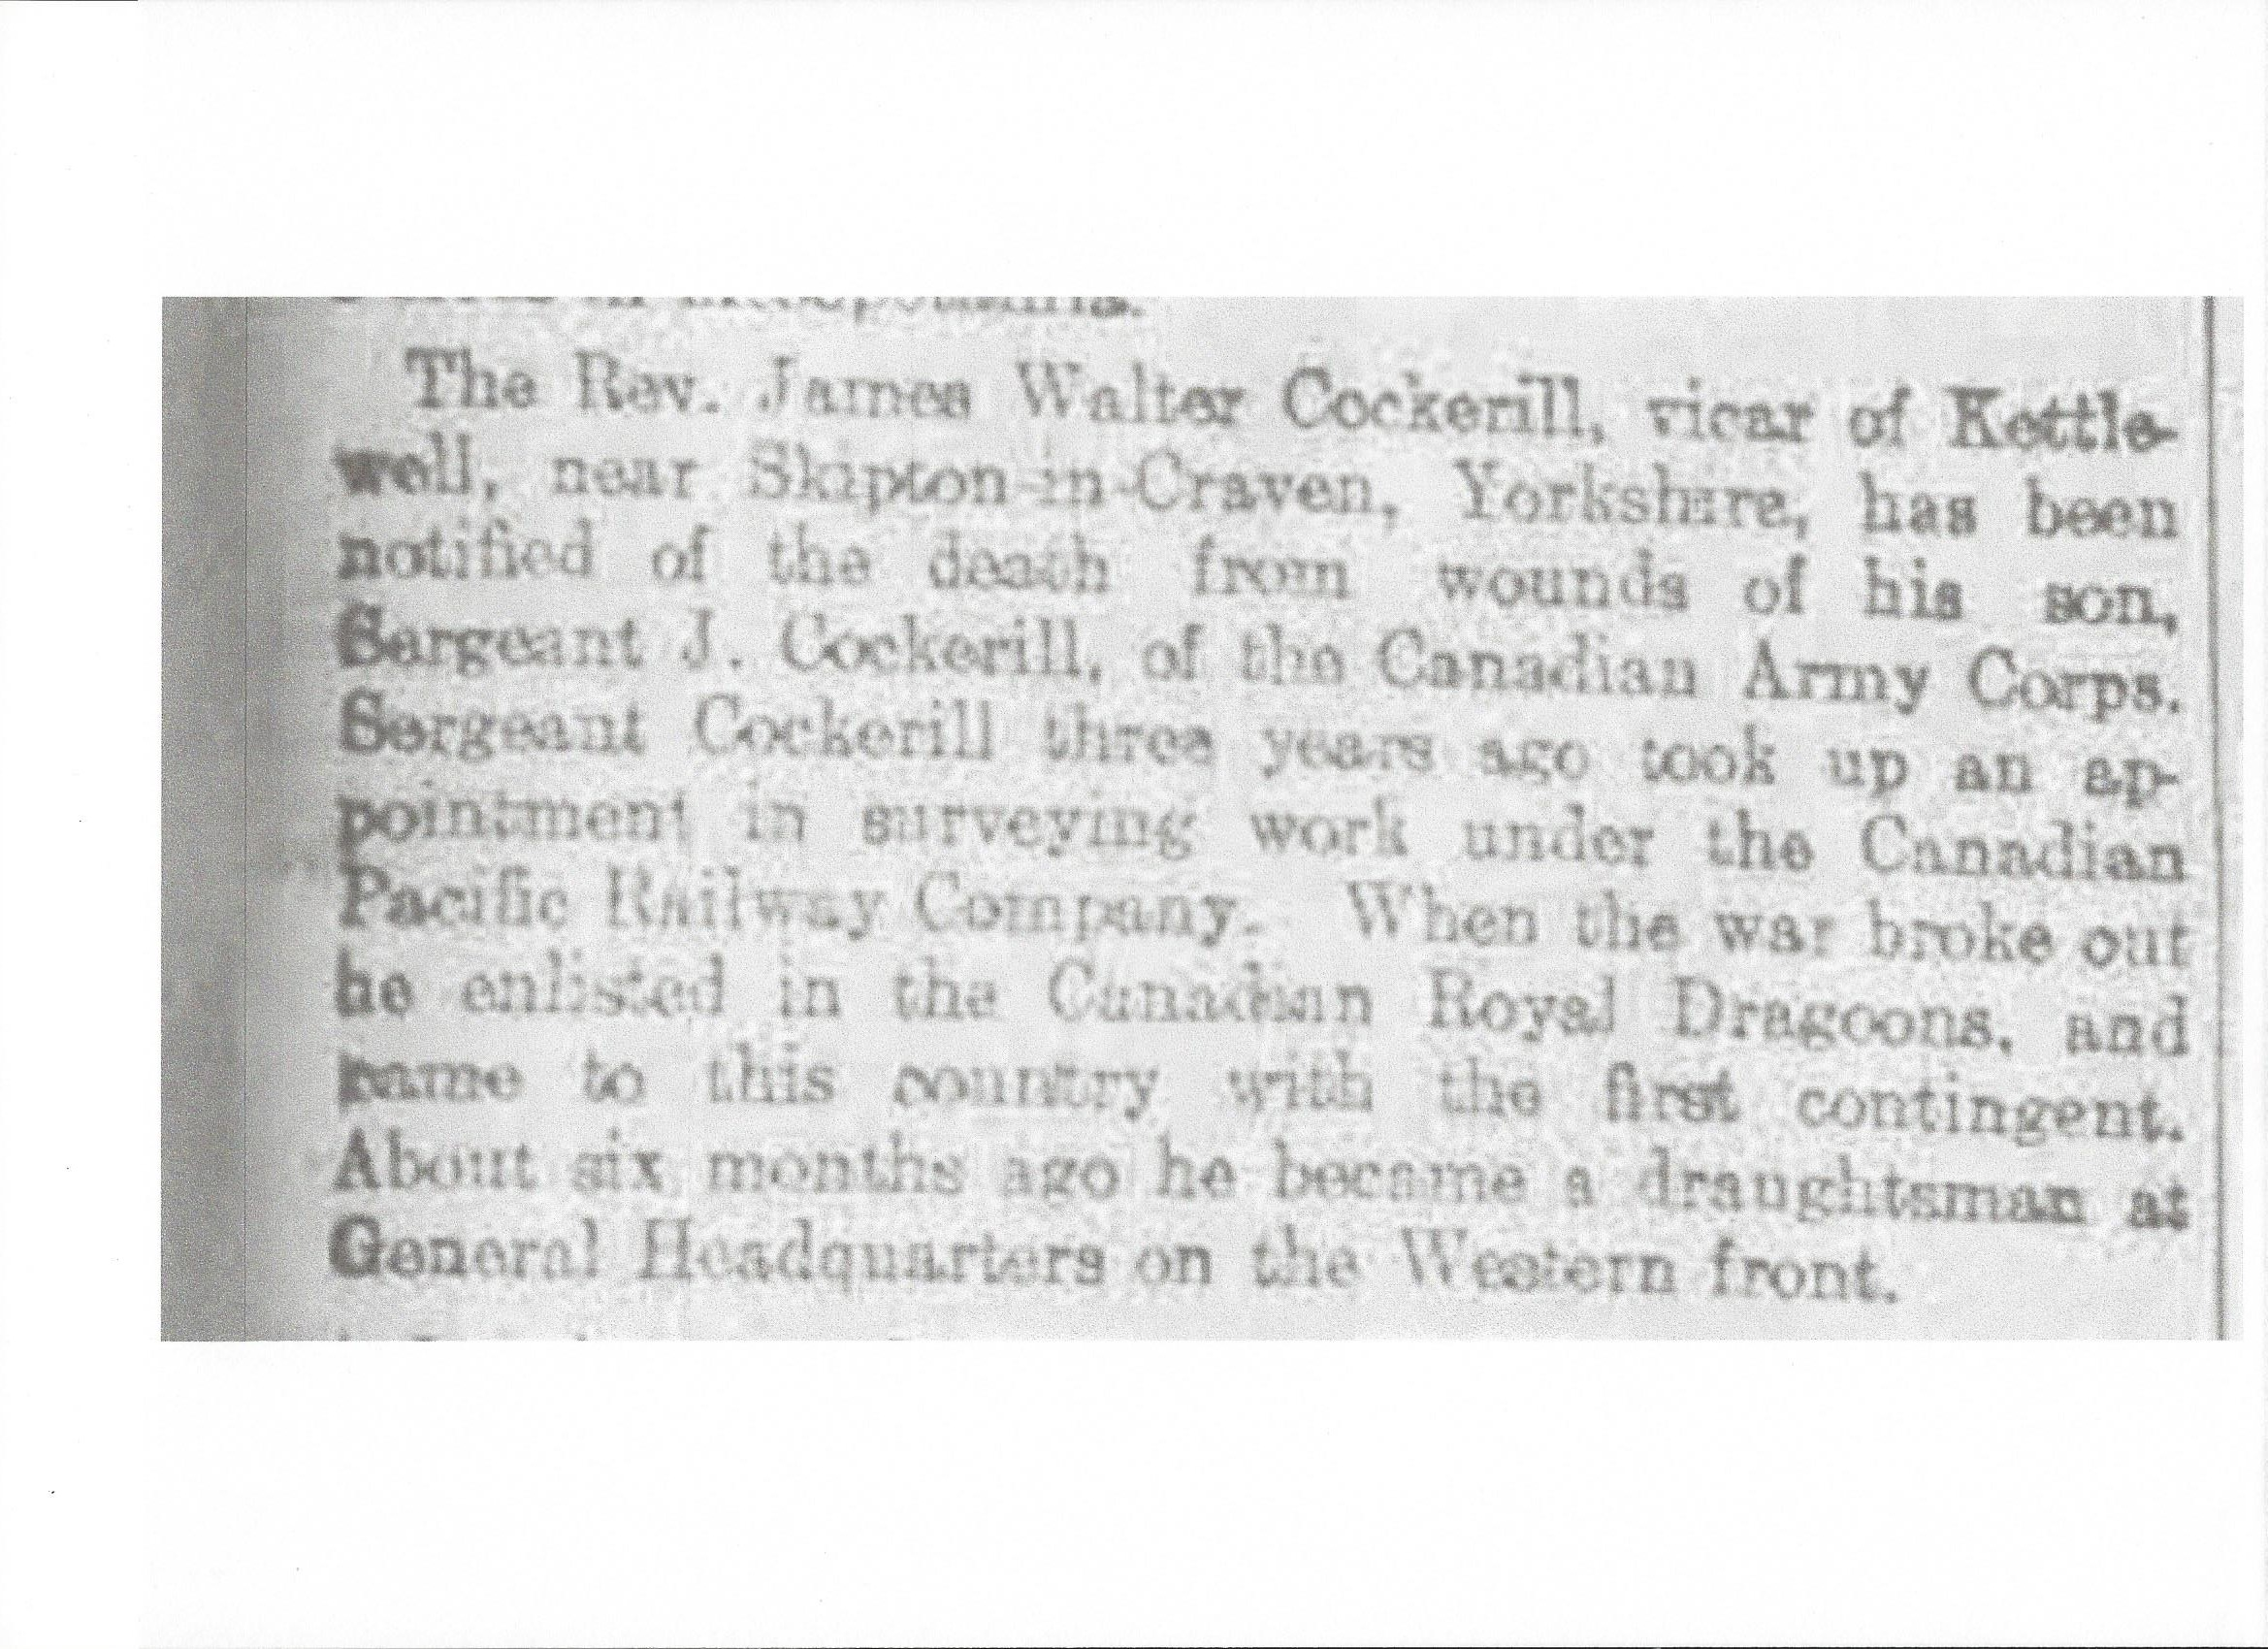 Newspaper Clipping– Newspaper clipping from Daily Telegraph of March 1, 1916. Image taken from web address of http://www.telegraph.co.uk/news/ww1-archive/12175172/Daily-Telegraph-March-1-1916.html